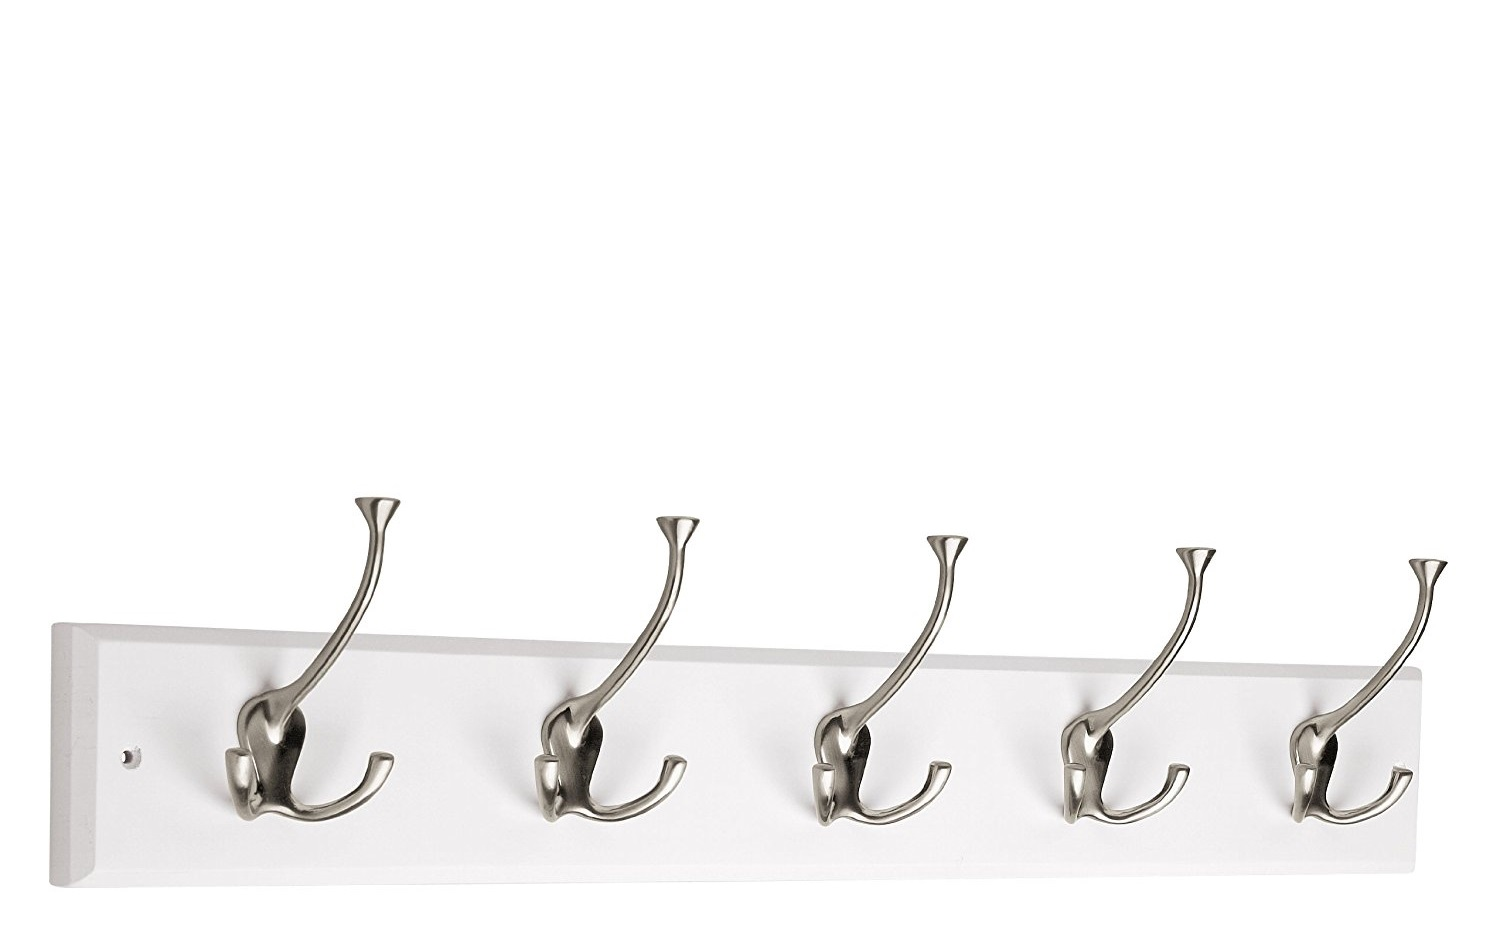 Liberty Hook Rail/Coat Rack with 5 Flared Tri Hooks, 27-Inch, Available in 2 Colors